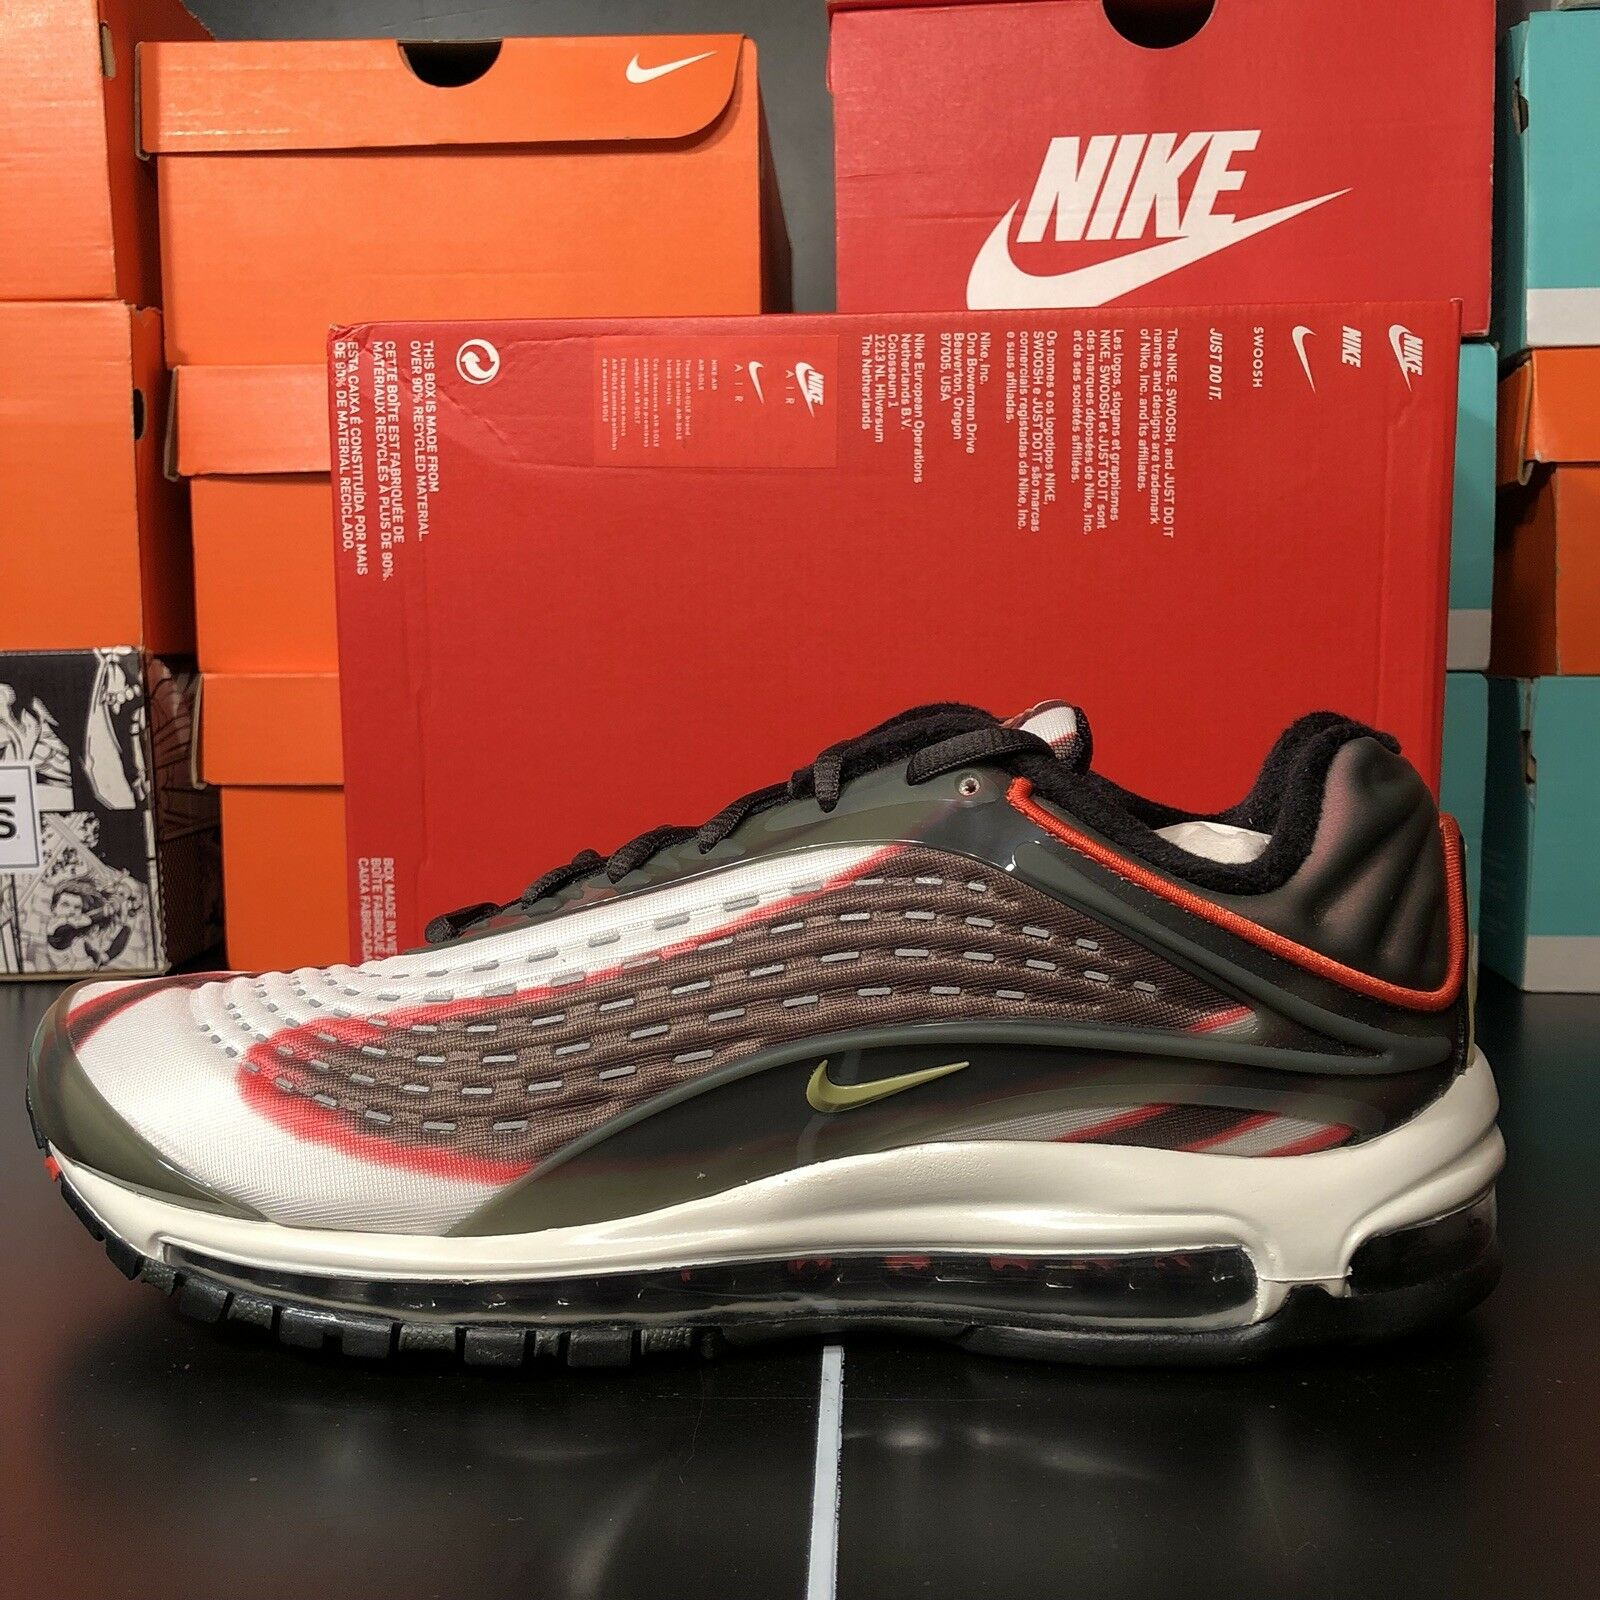 Nike Men's Air Max Deluxe NEW AUTHENTIC Sequoia Camper Green{AJ7831-300}Size10.5